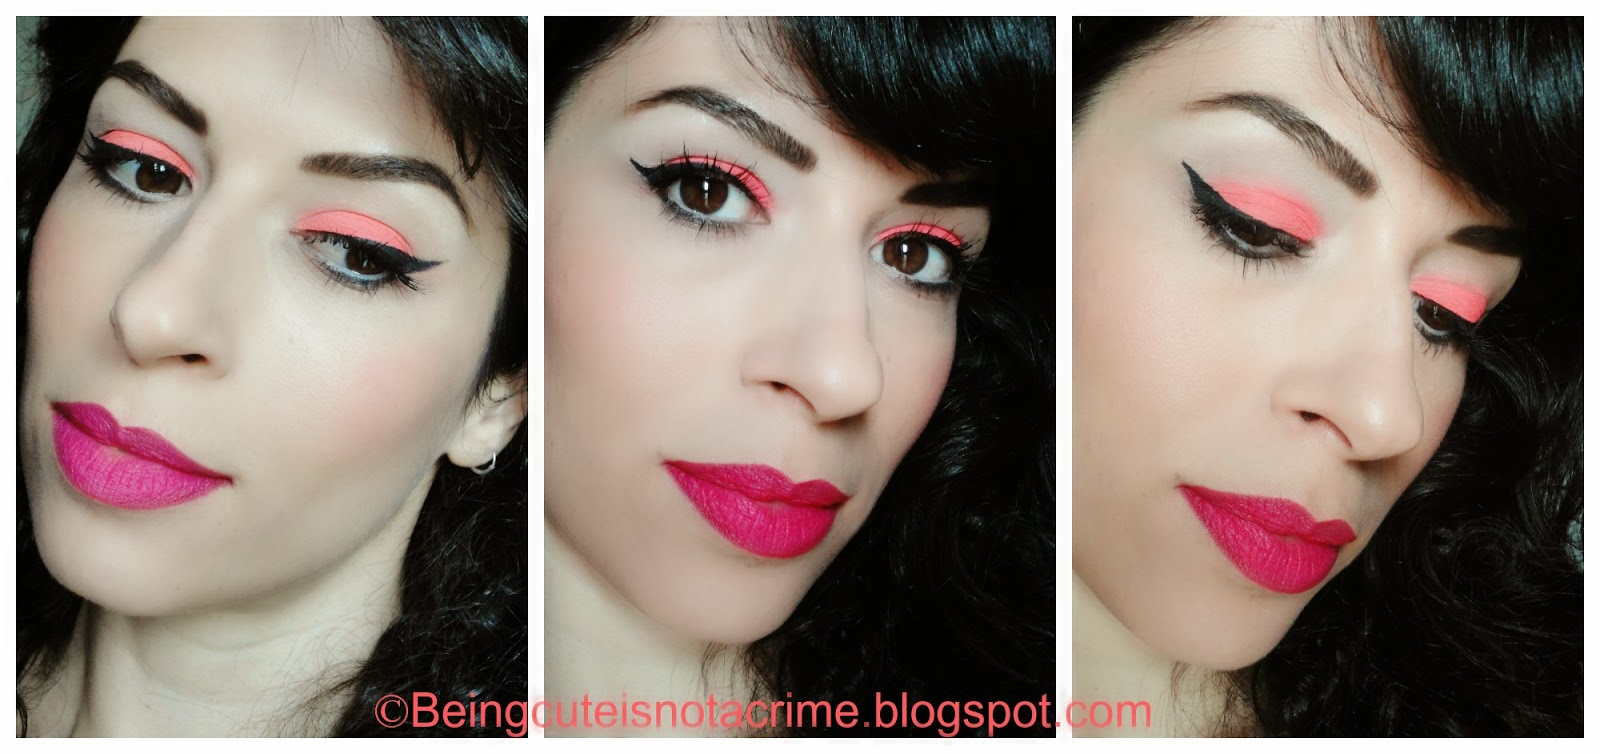 http://beingcuteisnotacrime.blogspot.nl/2014/03/its-neon-make-up-time.html